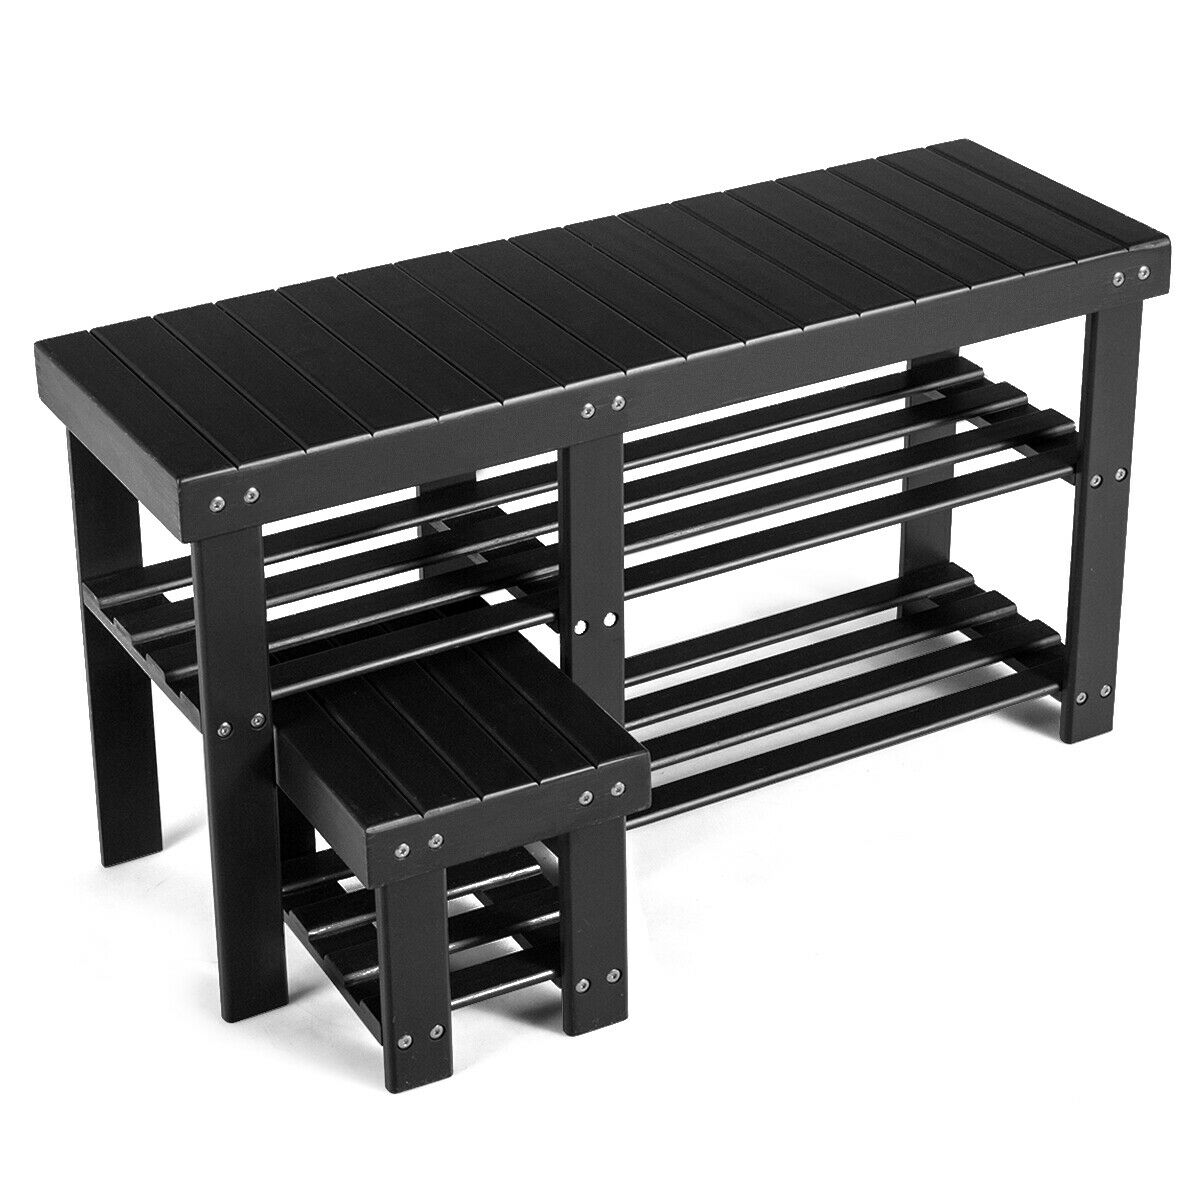 Bamboo Shoe Rack Bench With Stool 3 Tier Storage Organizer For Entryway Black For Sale Online